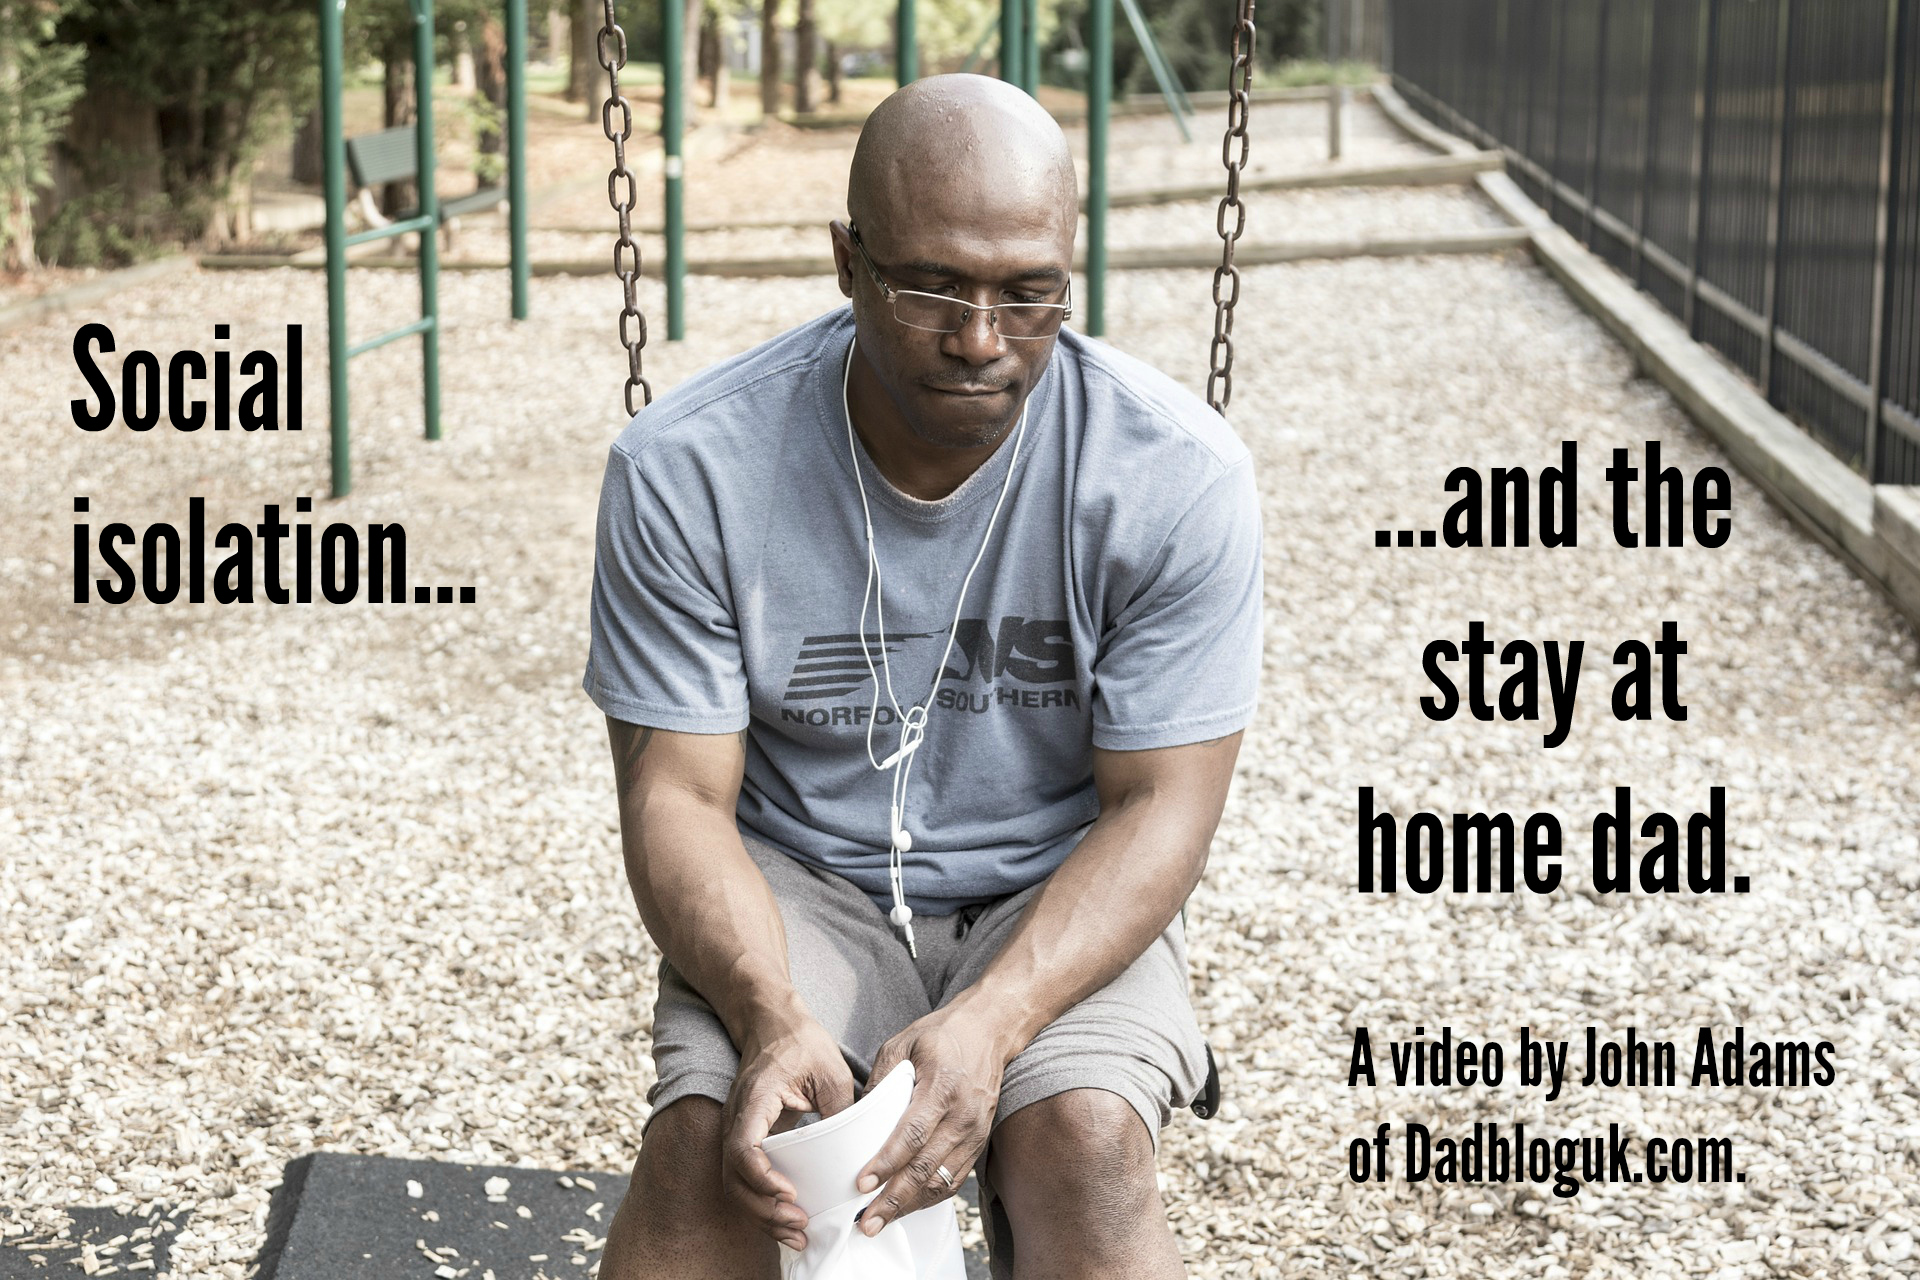 Social isolation; it's a dad thing too